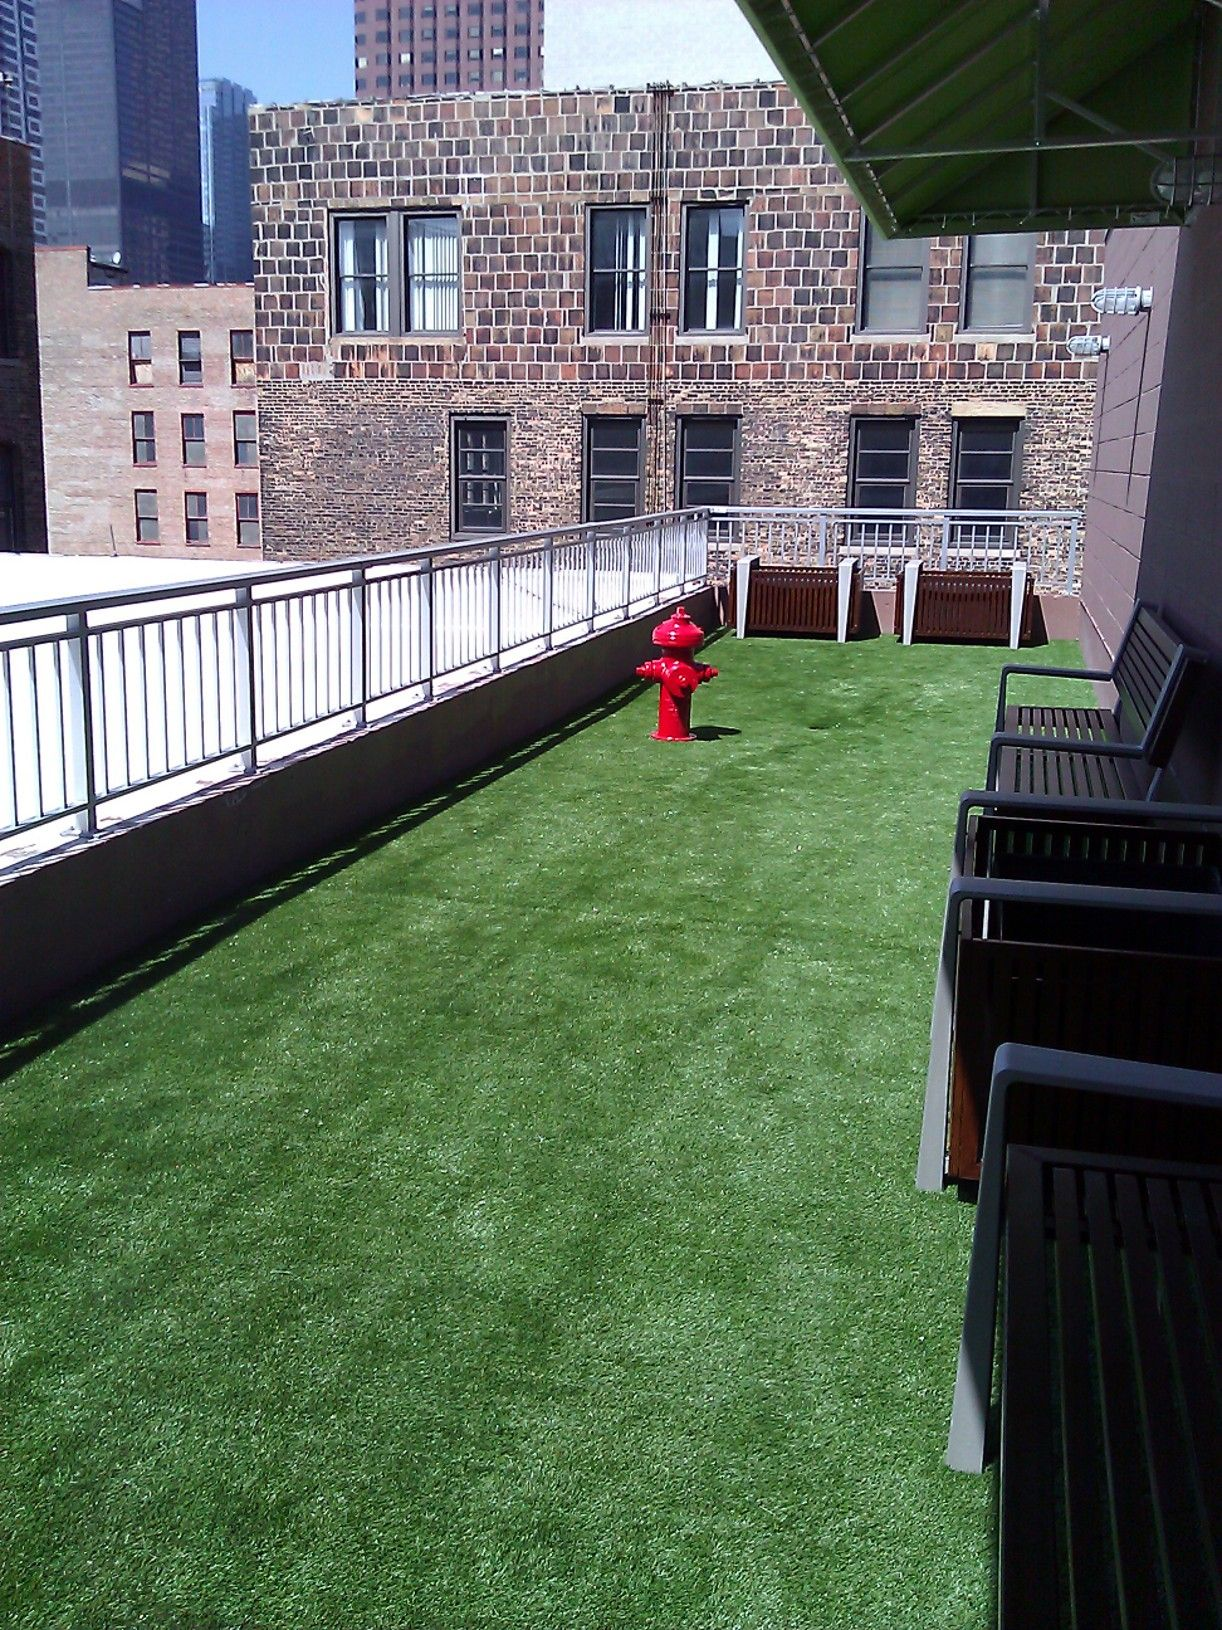 Beautiful Fake Grass Area For Your Balcony Or Deck Area. Made With Drainage So Itu0027s A